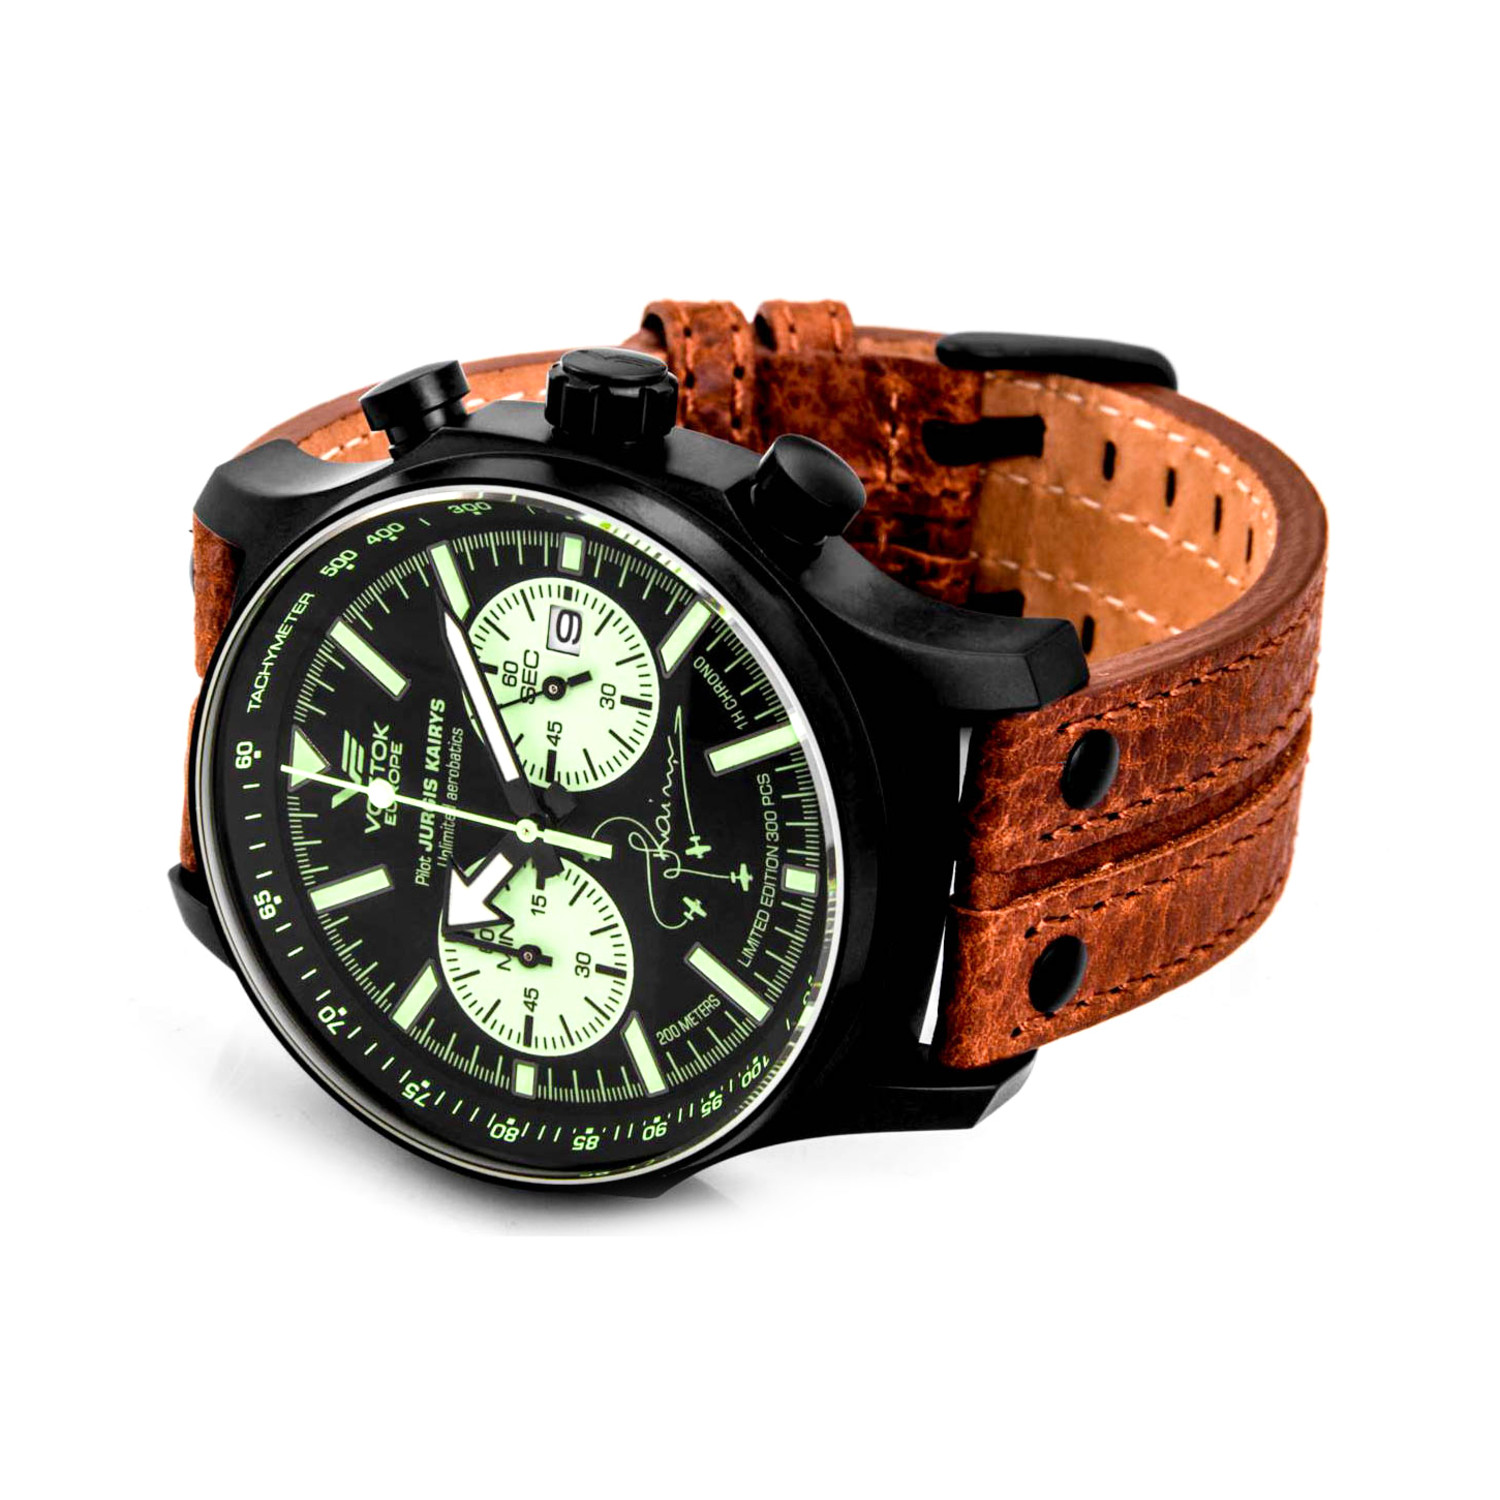 Vostok europe jurgis kairys special edition chronograph watch vostok europe touch of modern for Vostok europe watches